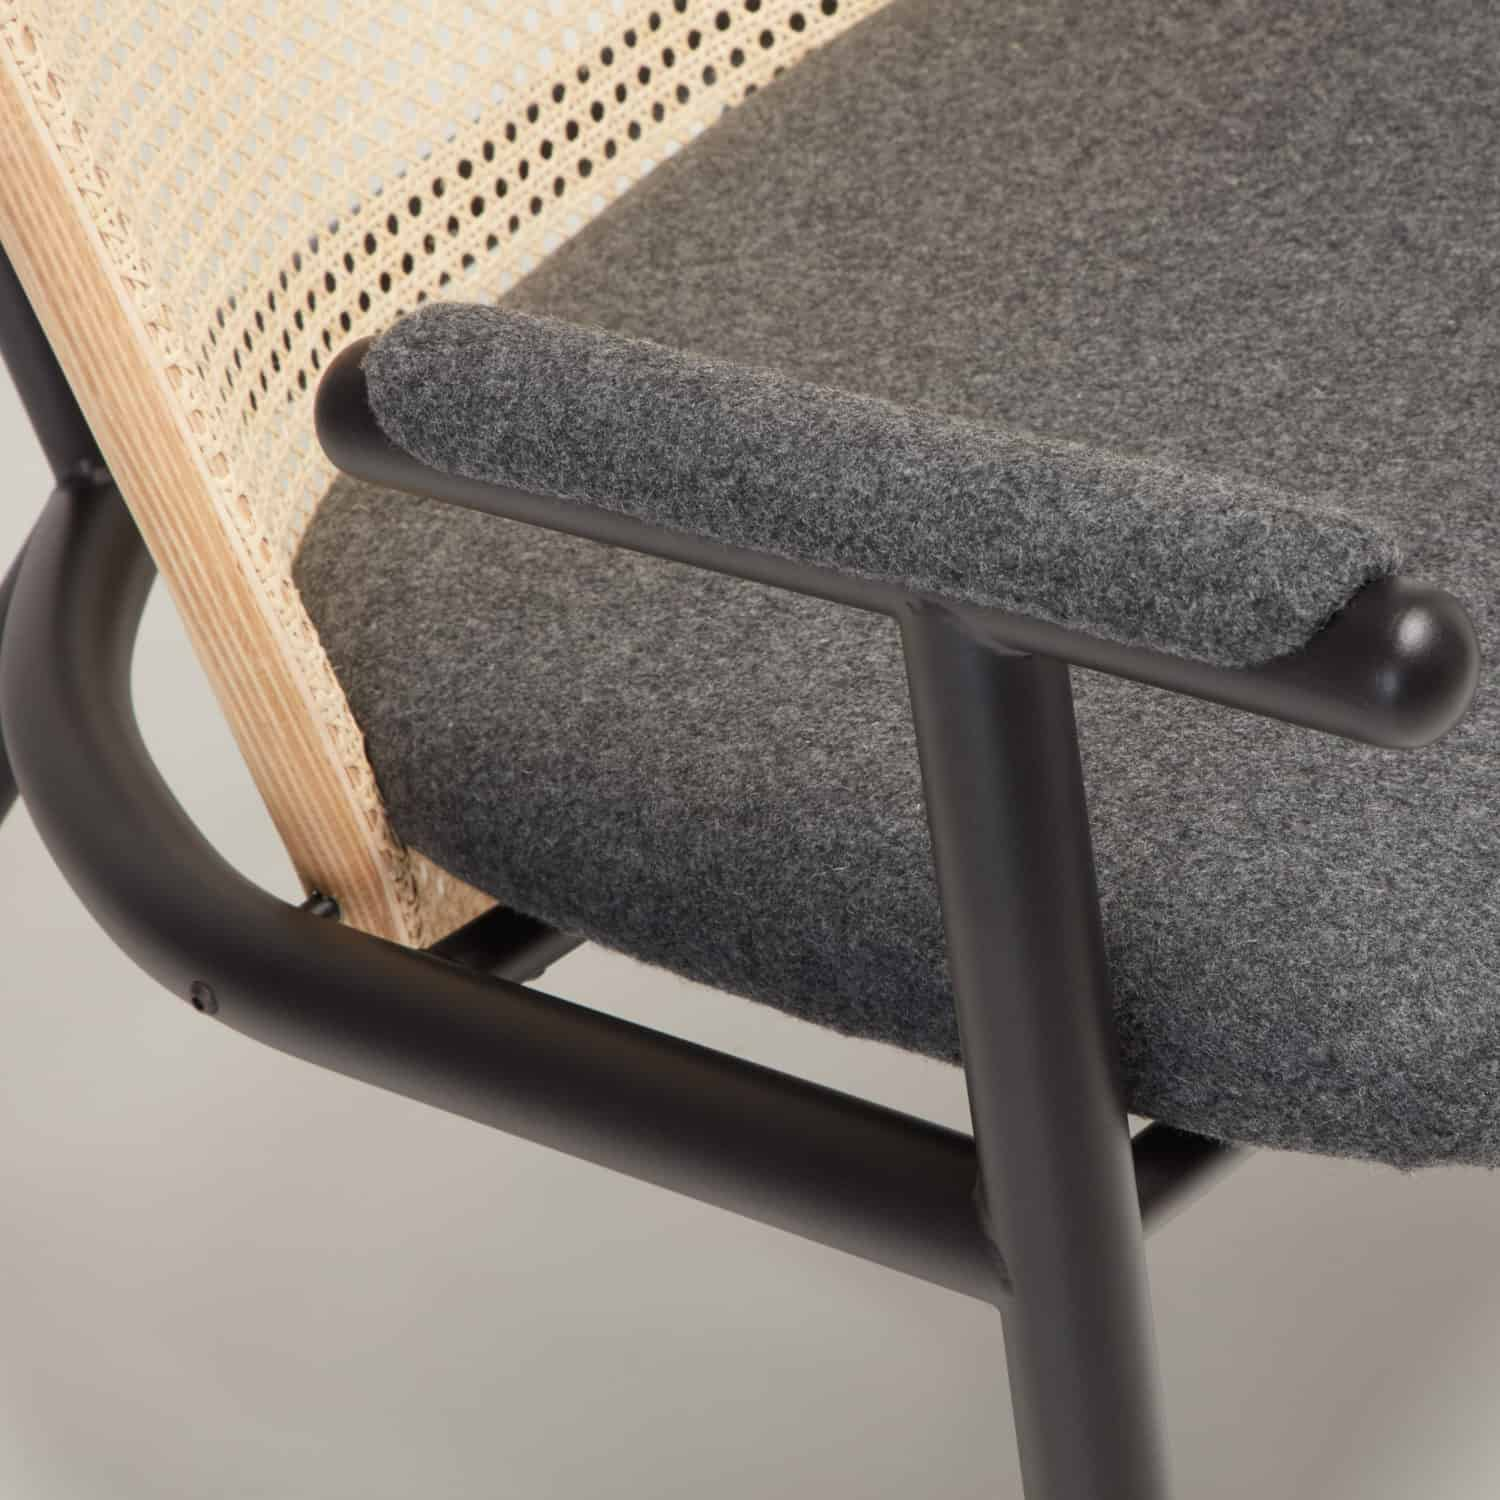 Terrific The Making Of Fold Chair Another Country Pabps2019 Chair Design Images Pabps2019Com